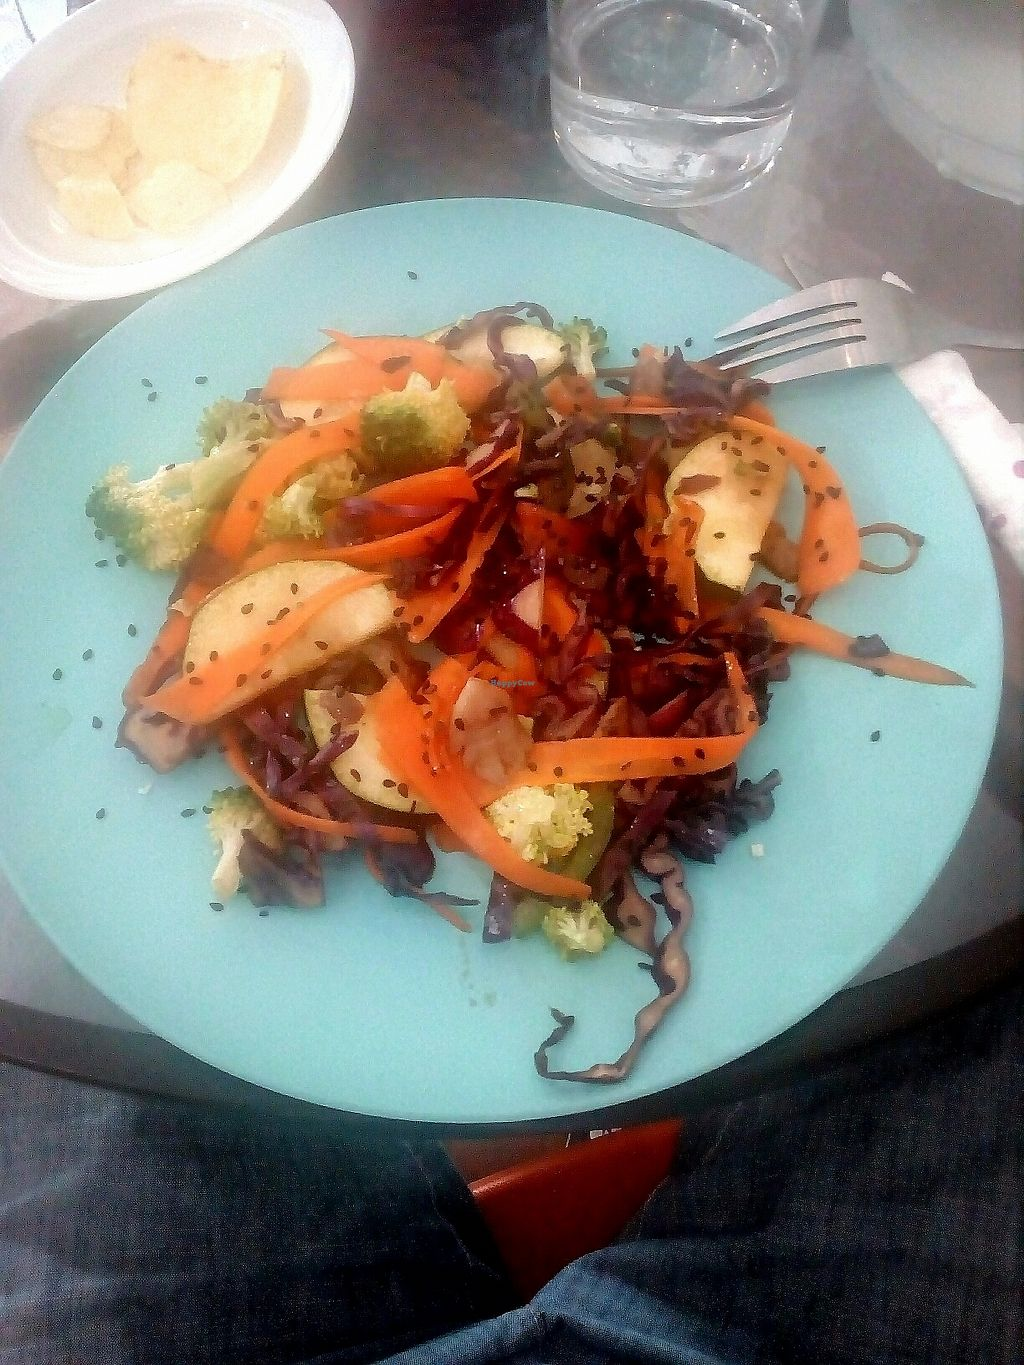 """Photo of El Enano Verde  by <a href=""""/members/profile/wyrd"""">wyrd</a> <br/>veggies wok <br/> July 23, 2017  - <a href='/contact/abuse/image/92691/283821'>Report</a>"""